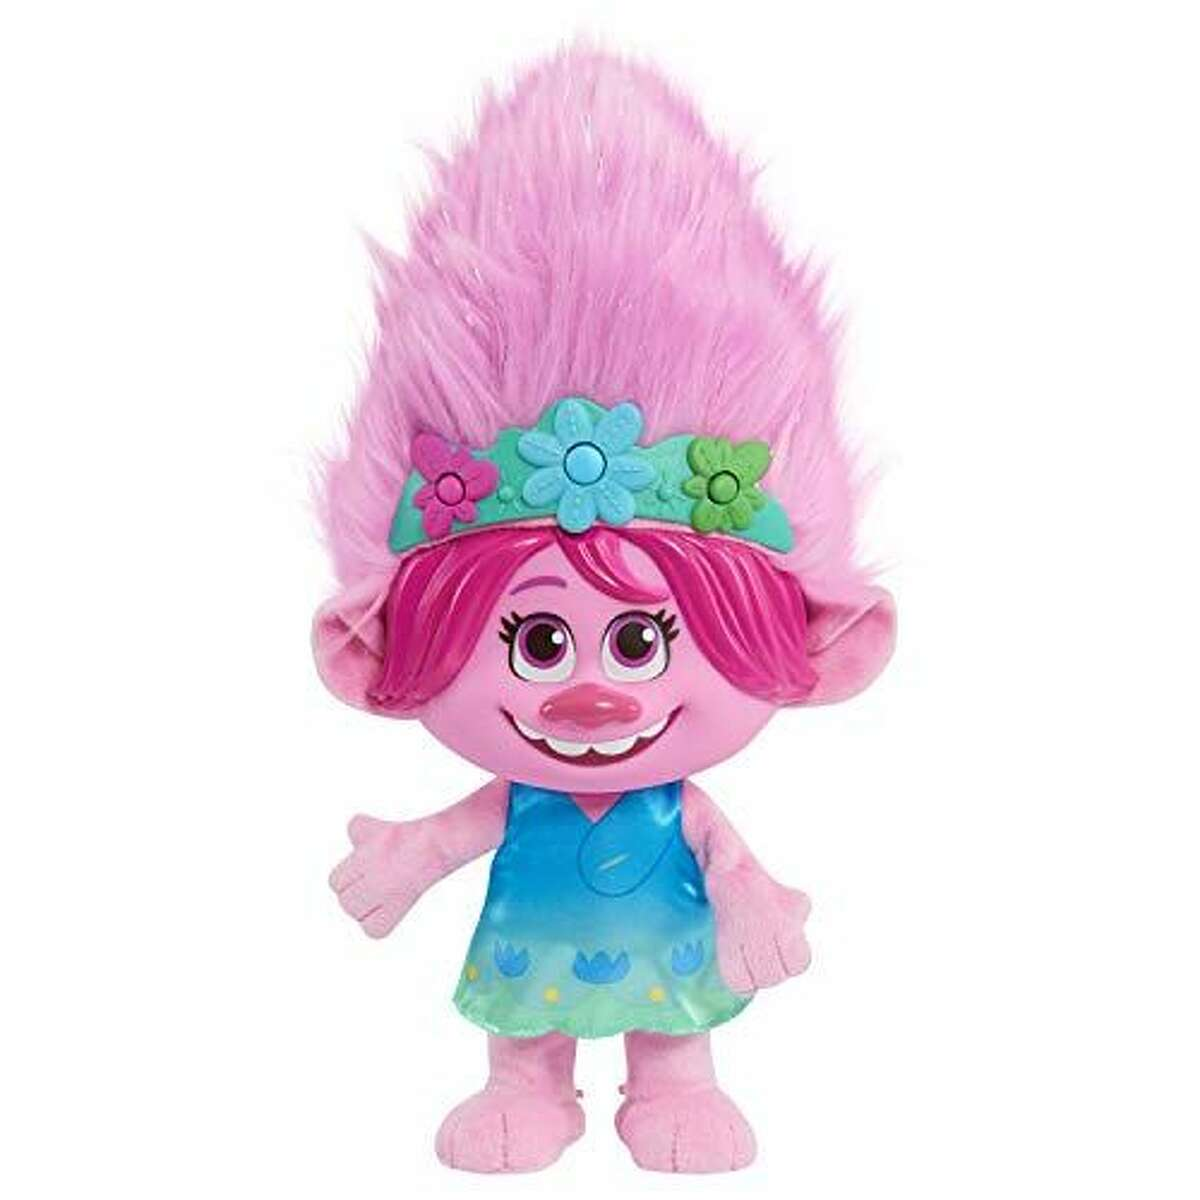 'Trolls World Tour' Color Poppin' Poppy: $26.95 Shop Now This Poppy plush is just as energetic and musical as you'd want her to be. She can play games like Poppy Says, sing songs like